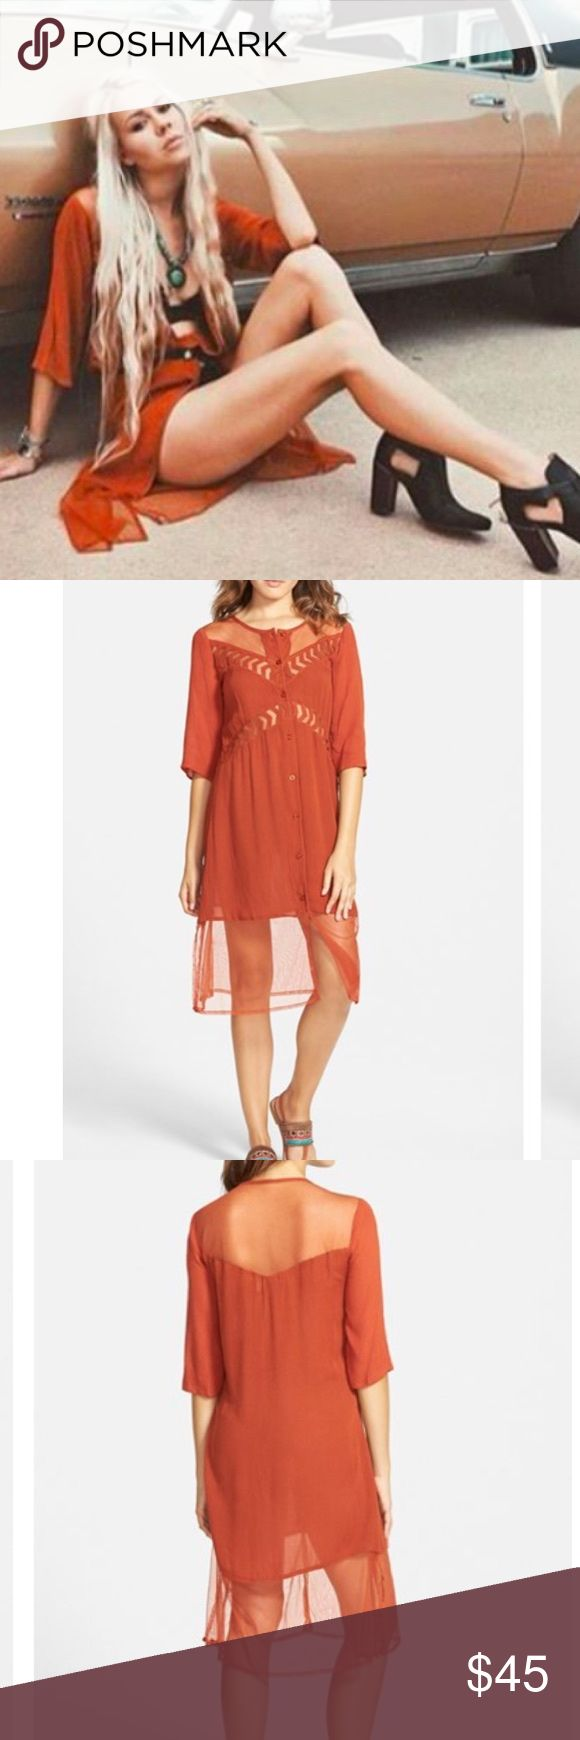 """Listing Volcom Boho Midi Dress Volcom Highway Child Boho Midi Dress. Sheer insets at the yoke and contrast hem lend flirty, skin-baring details to a shirtdress framed with chic elbow sleeves in this unique, super boho rusty color. Front button closure. 100% viscose. Approx. 40"""" long. Armpit to armpit approx. 18"""" across laying flat. Definitely has an oversized feel, so I think it'd work for XS-S IMO. Stock photo from Volcom catalogue shoot. Volcom Dresses Midi"""